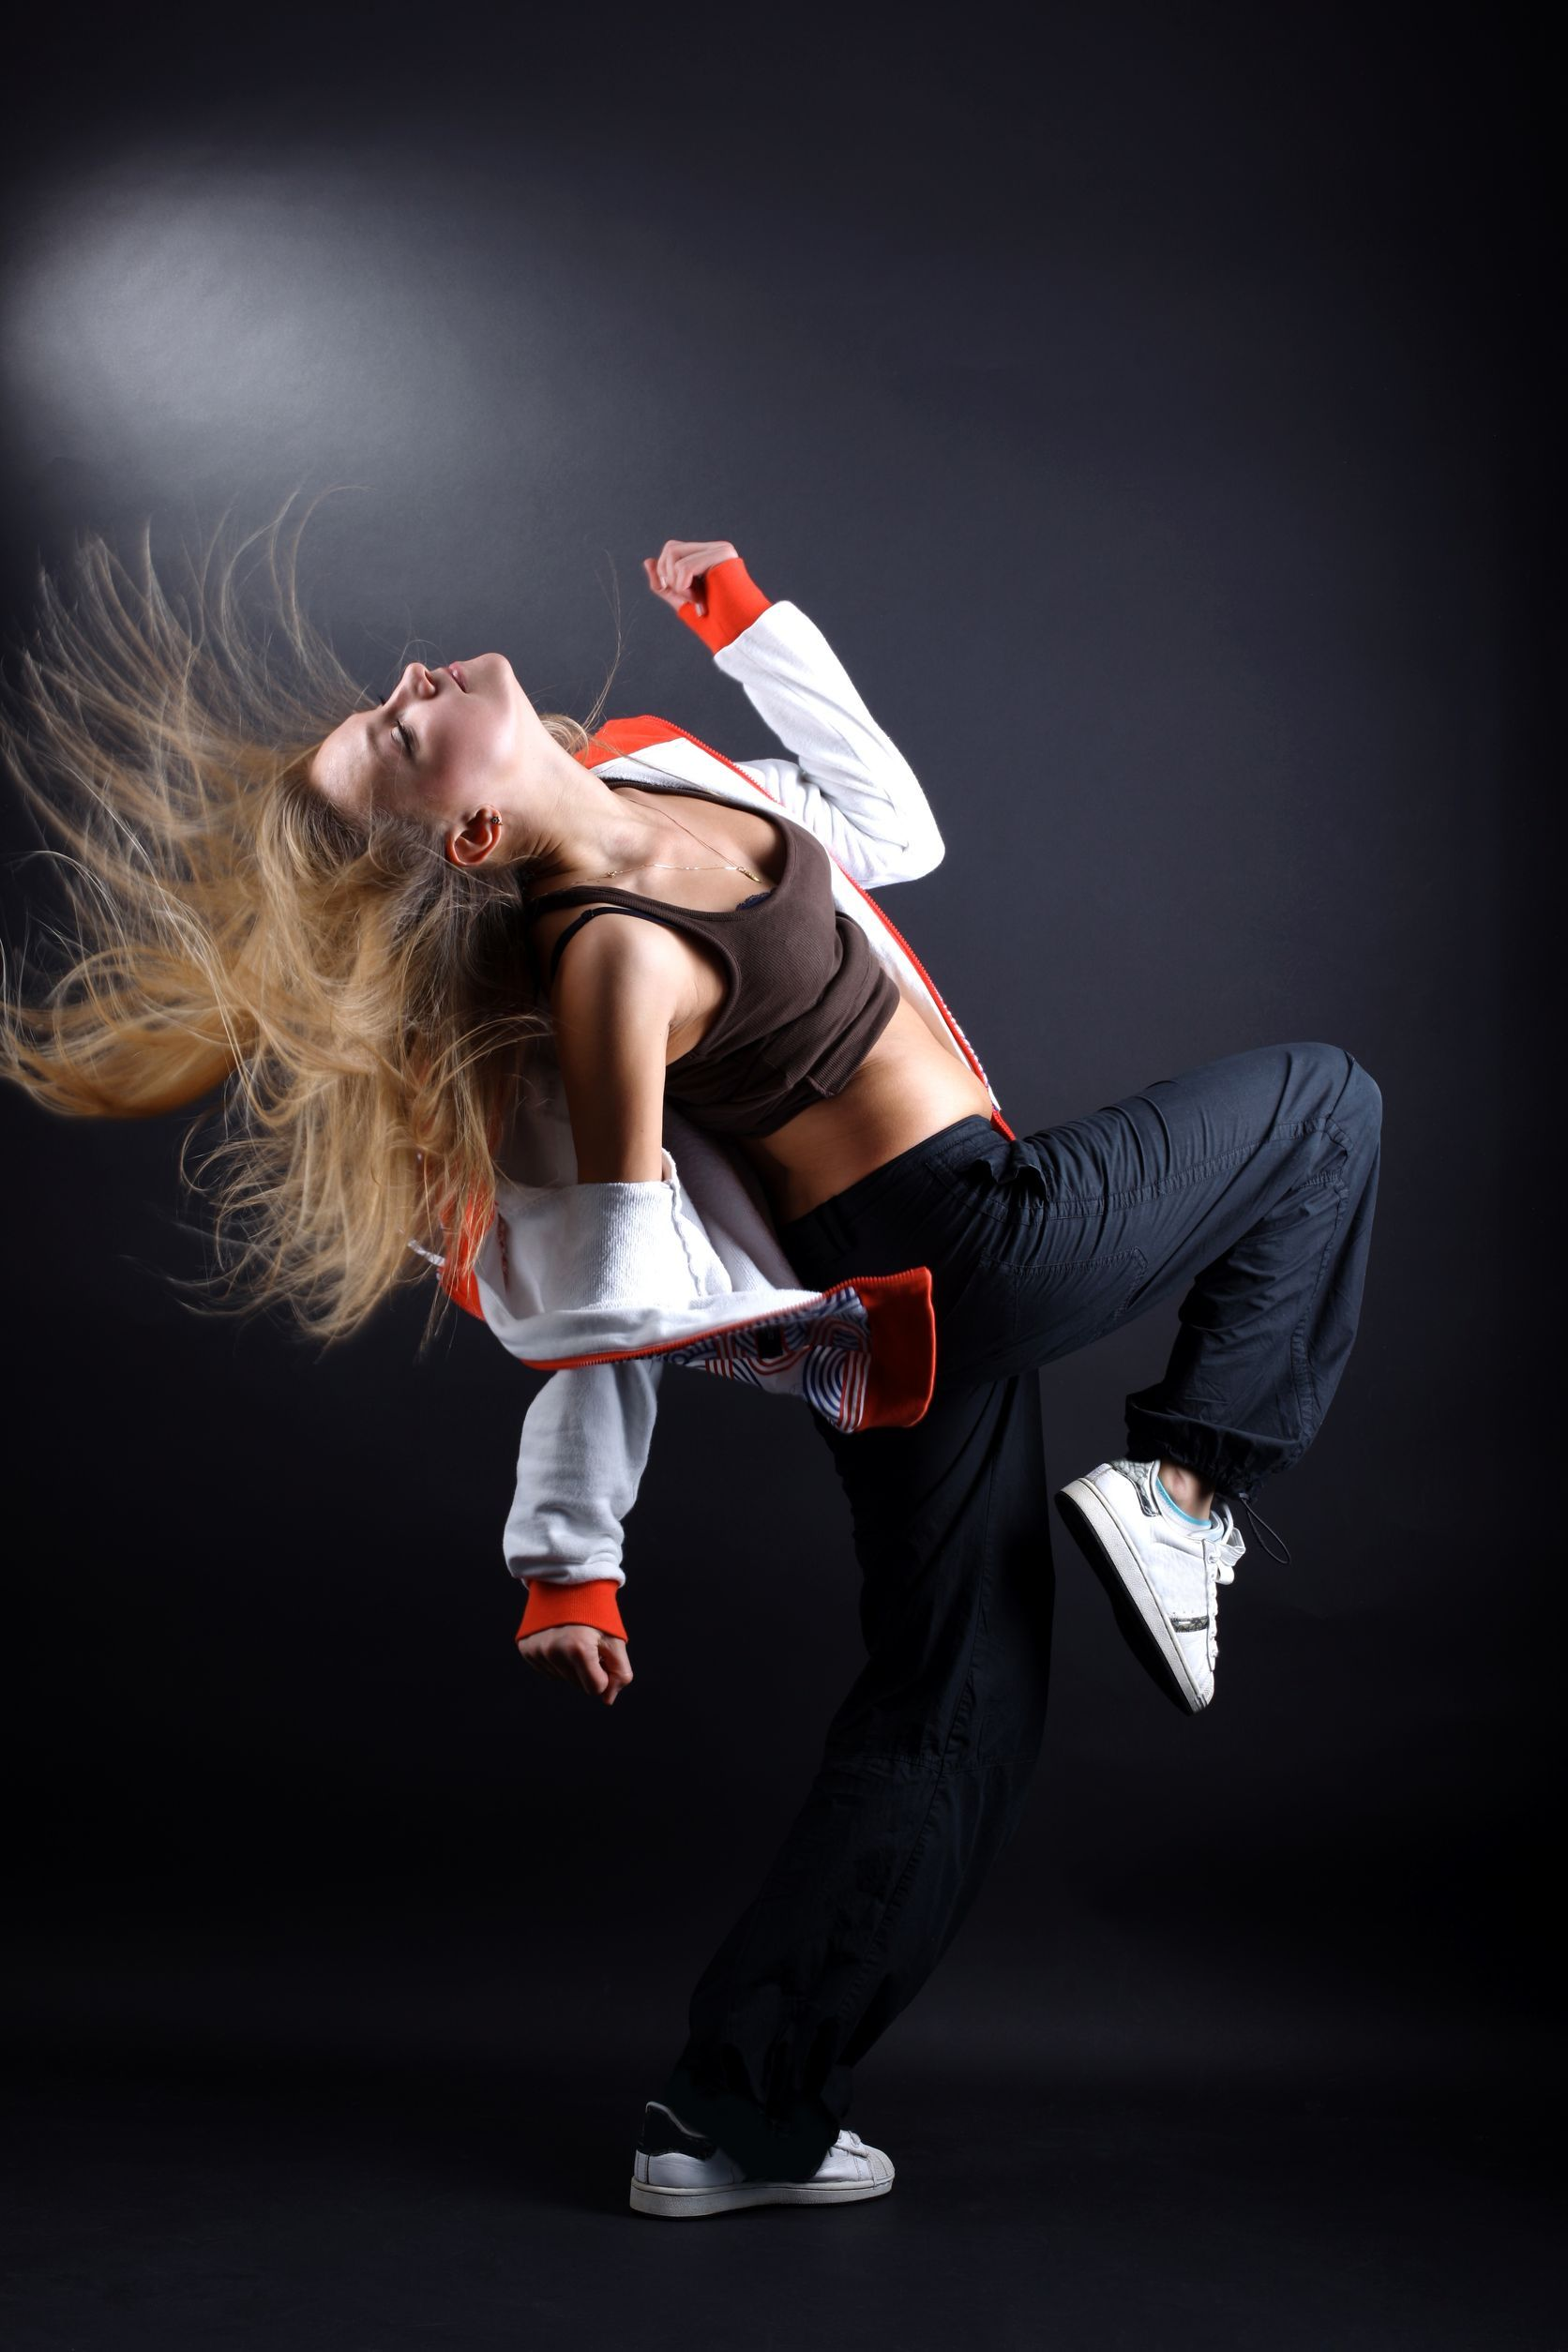 hip hop dance photography - Google Search - Street Dance ...